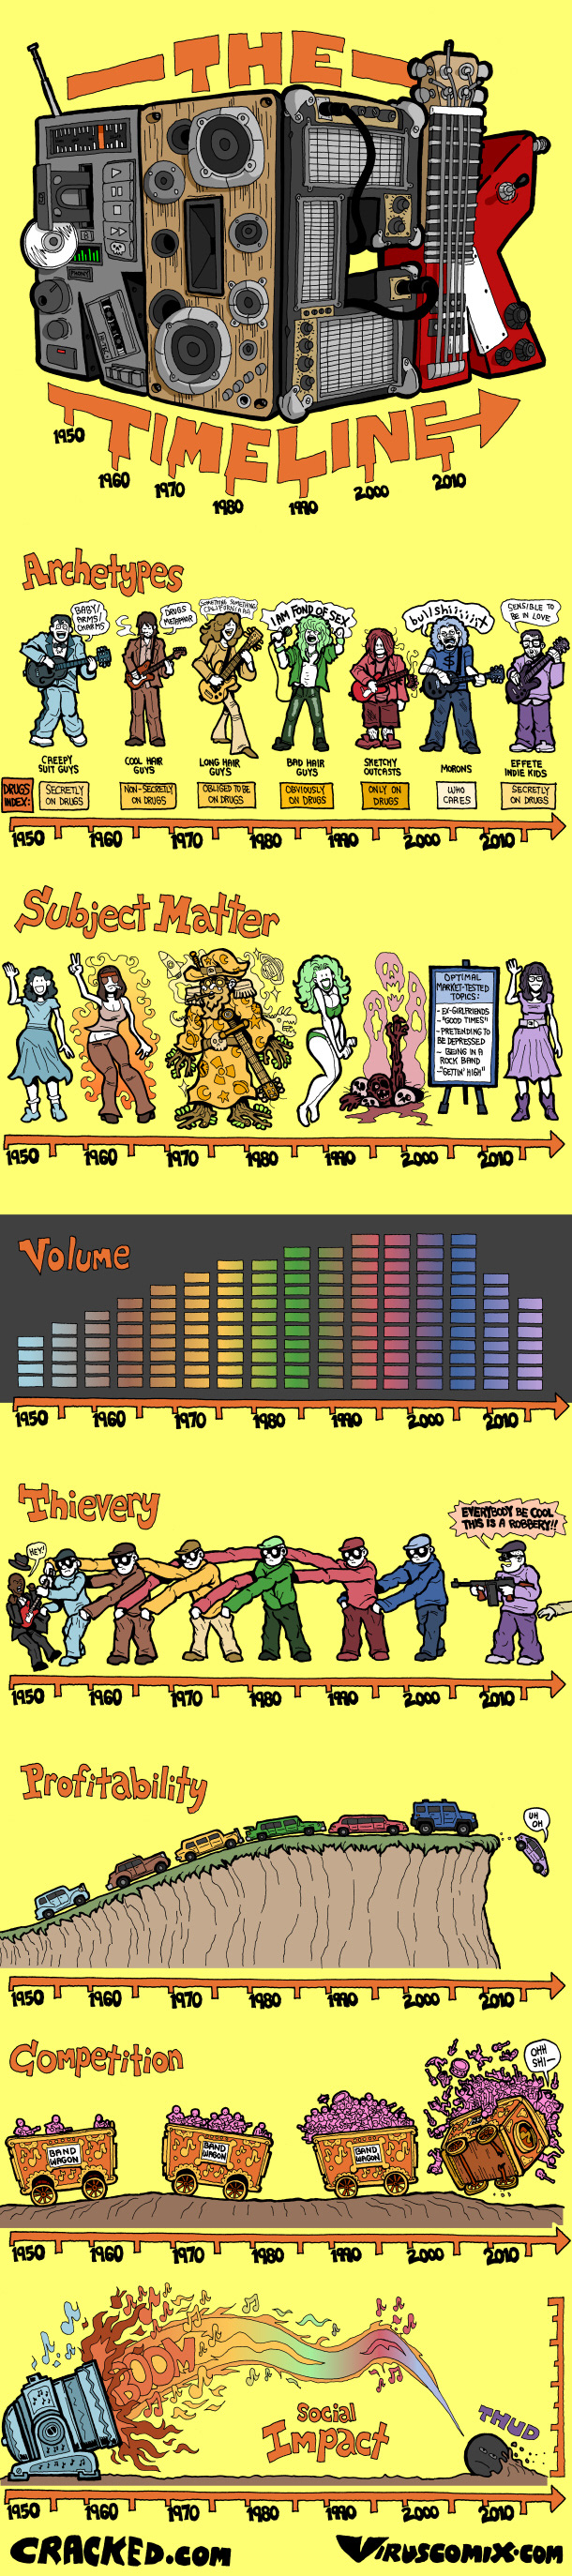 The-Rock-History-Timeline-Infographic